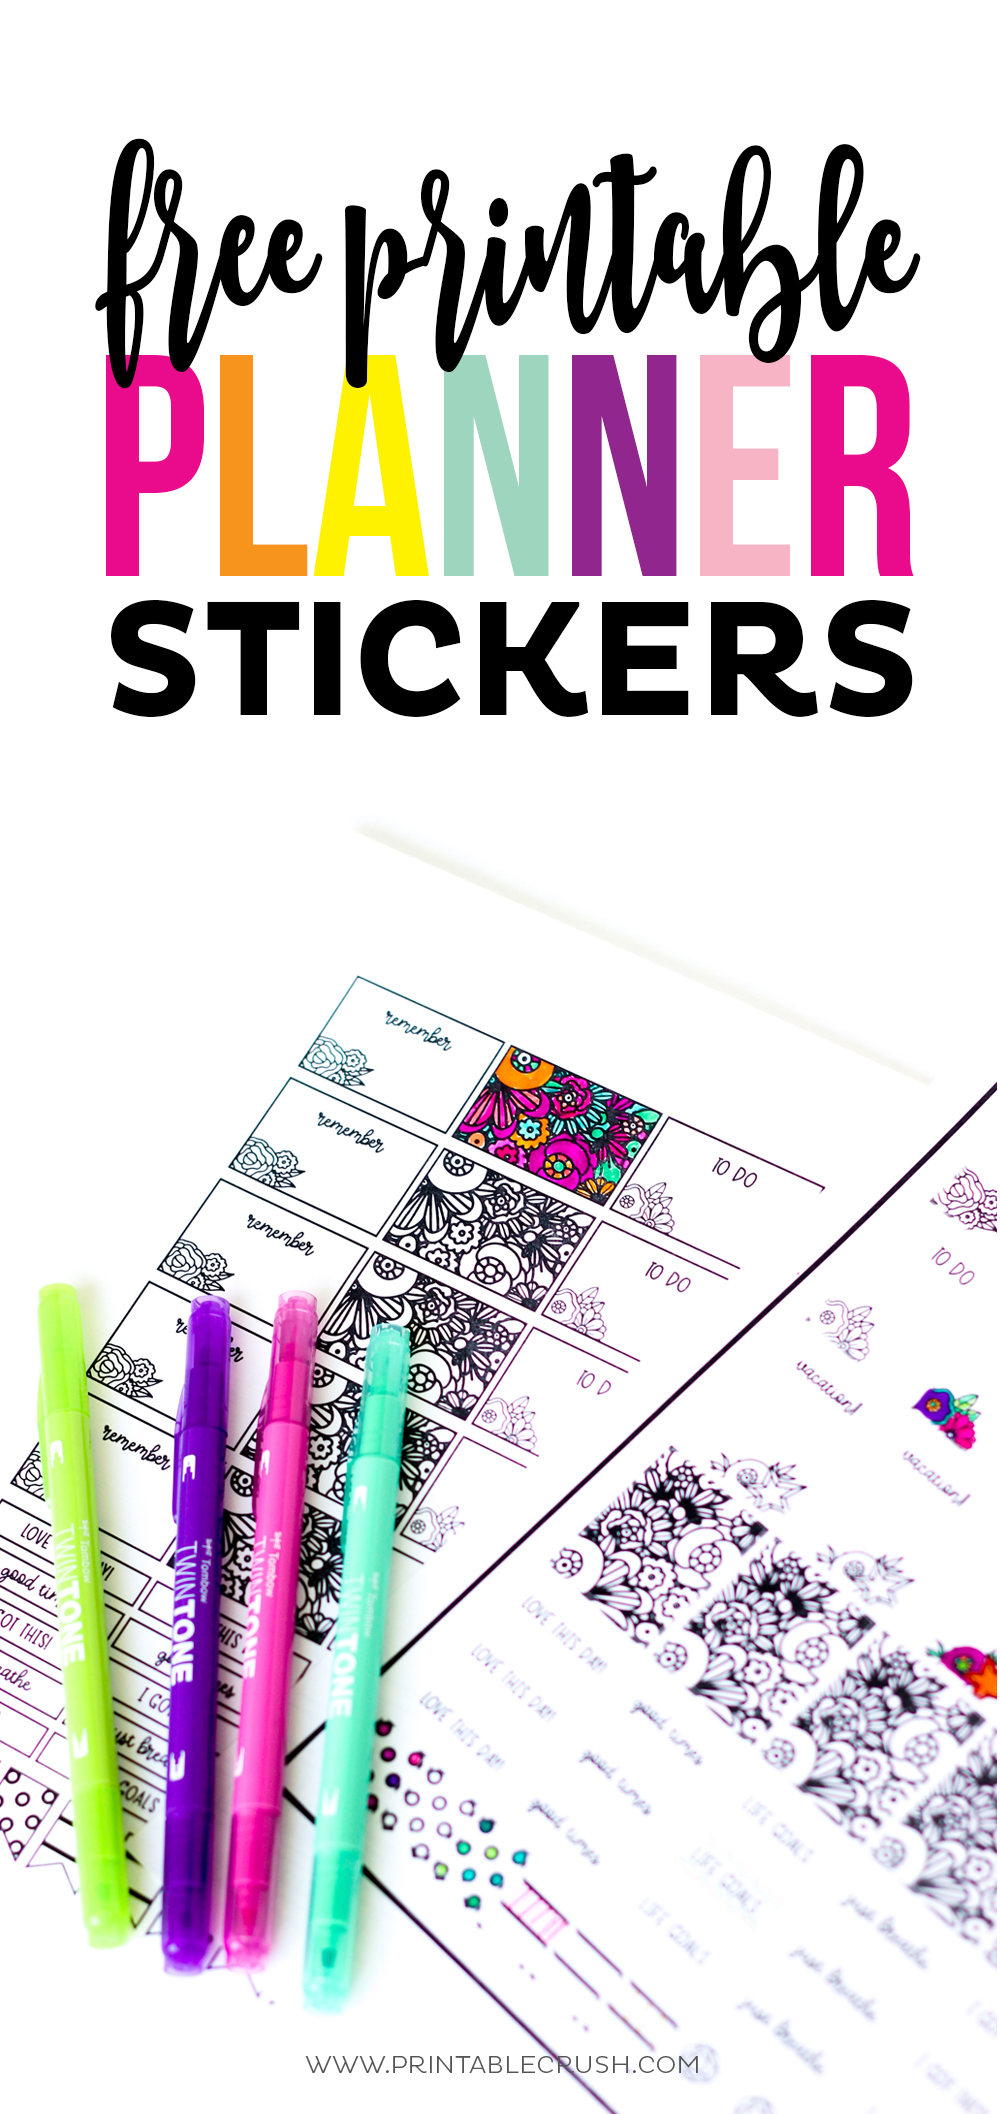 Sheets of black and white printable planner stickers with colored pens laying on them.